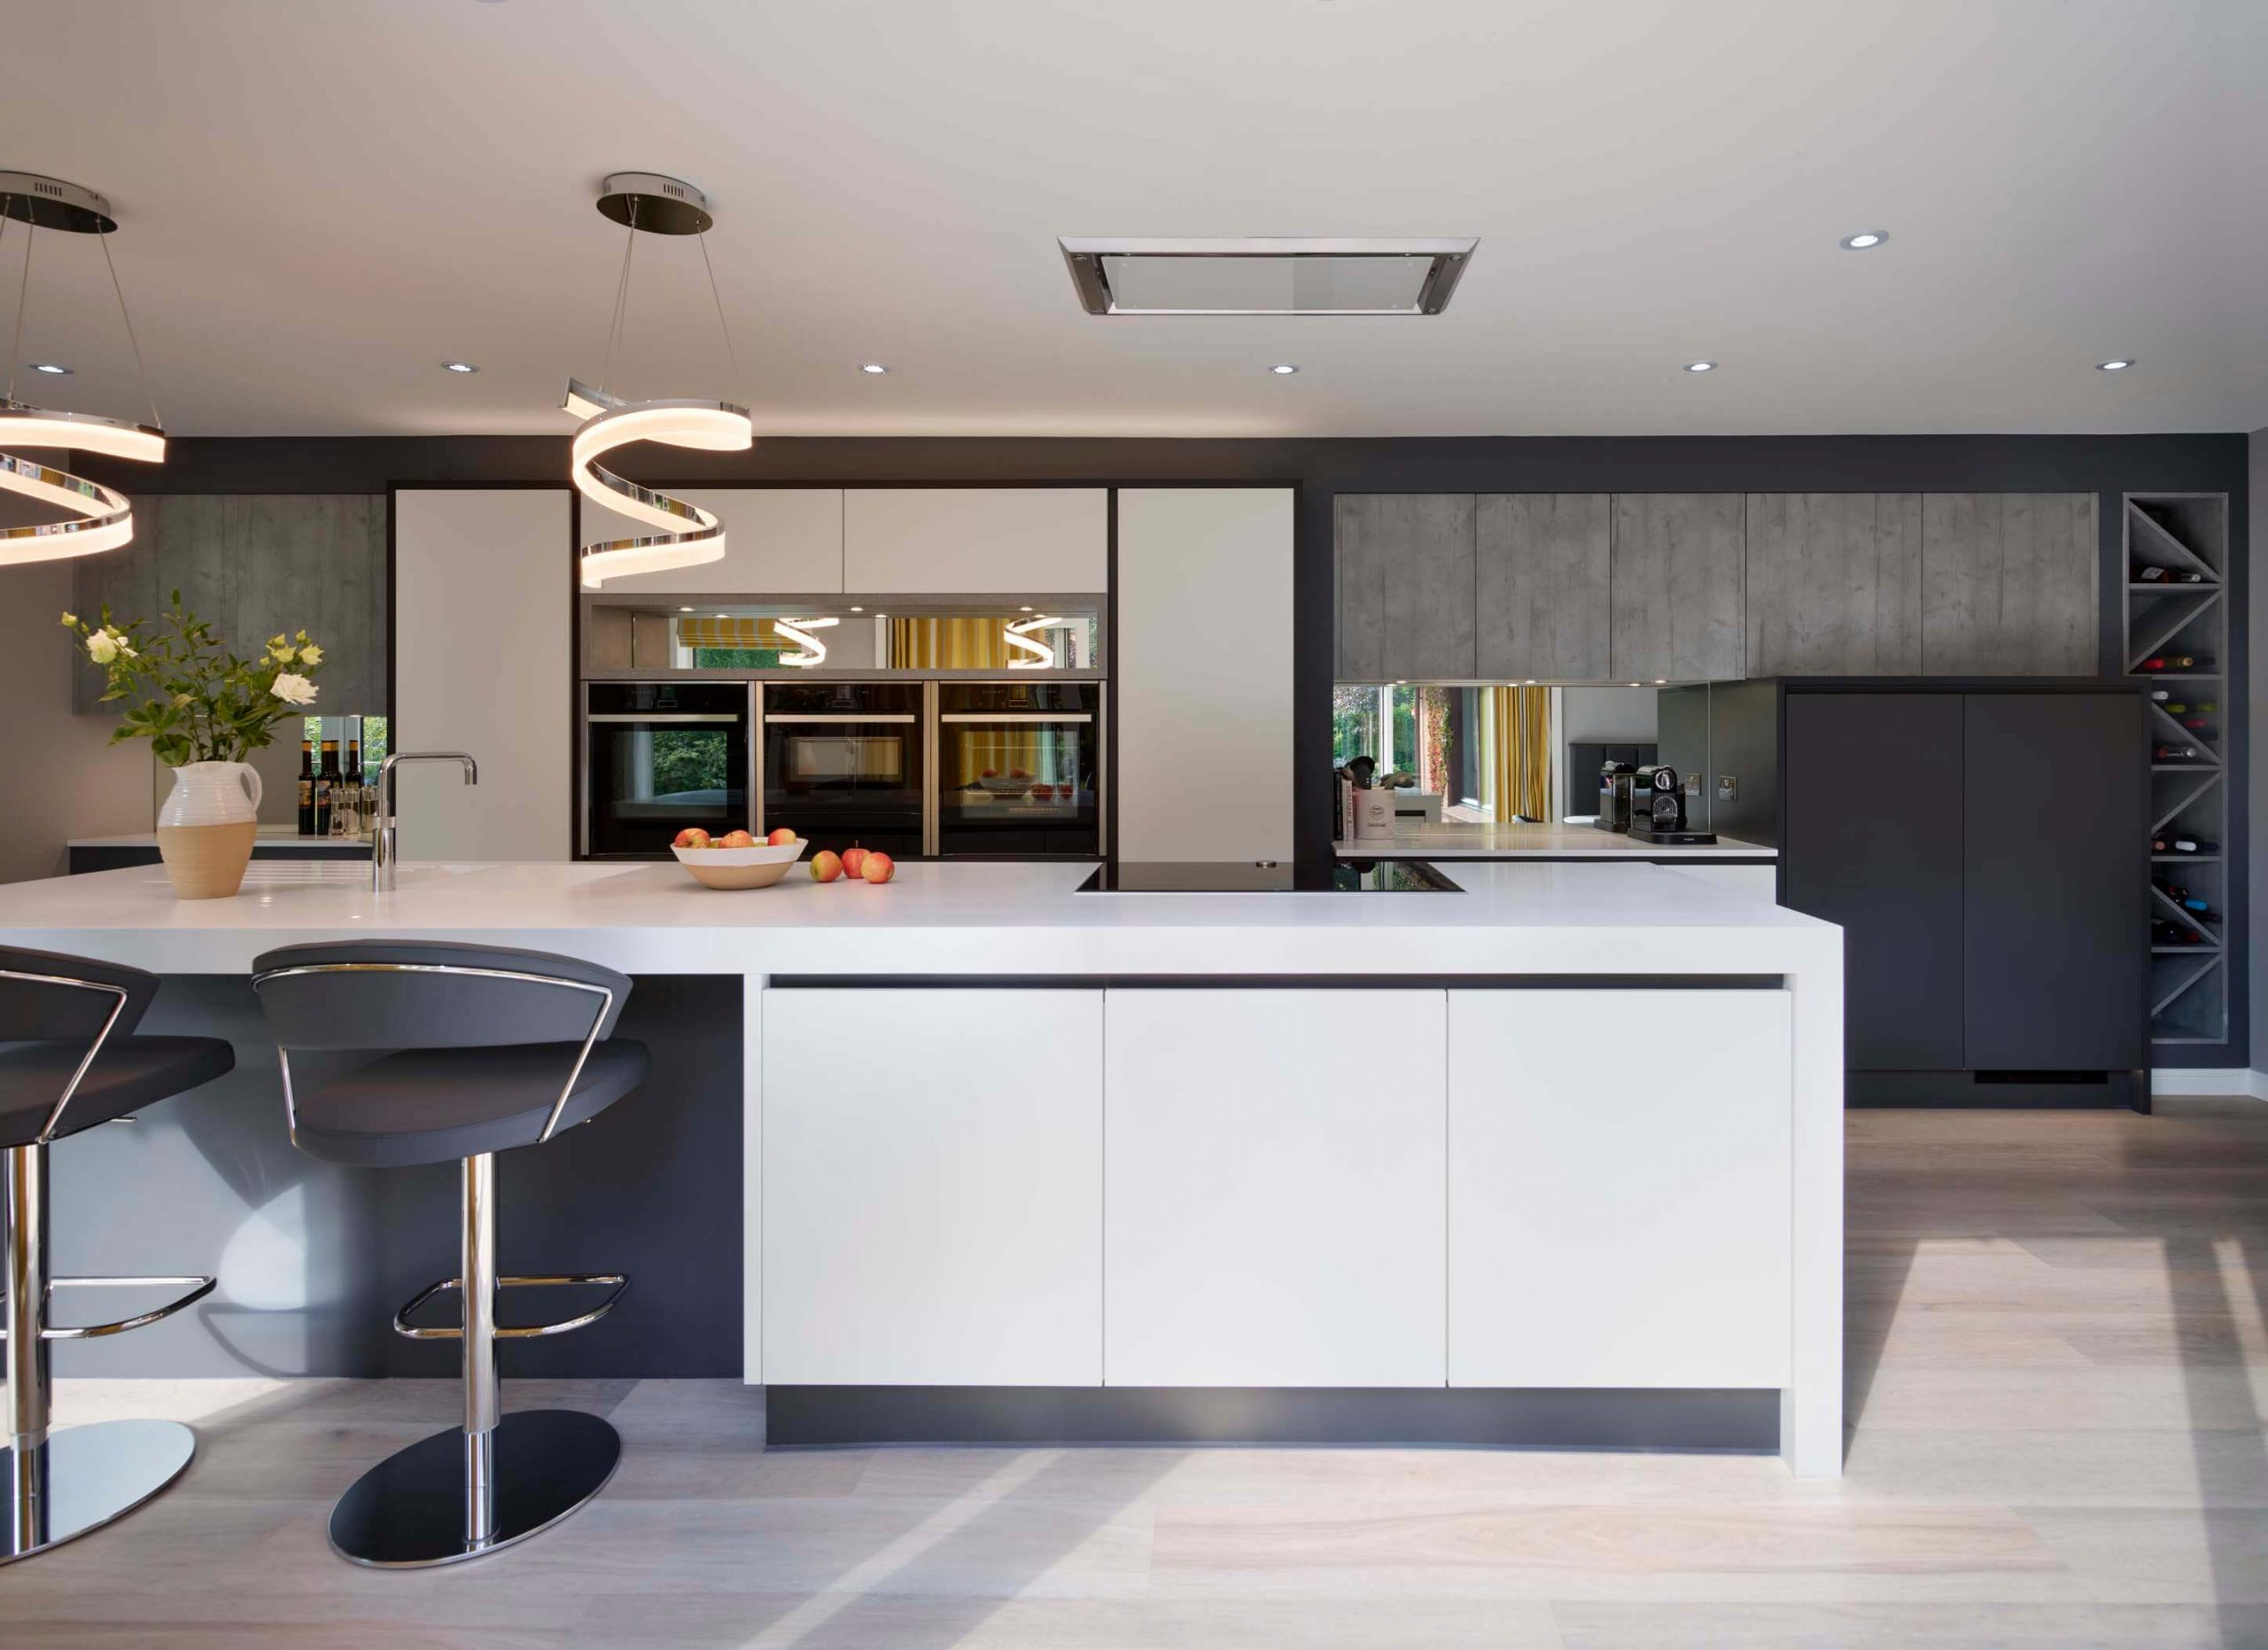 Modern Handleless Kitchen With An Industrial Style (5)